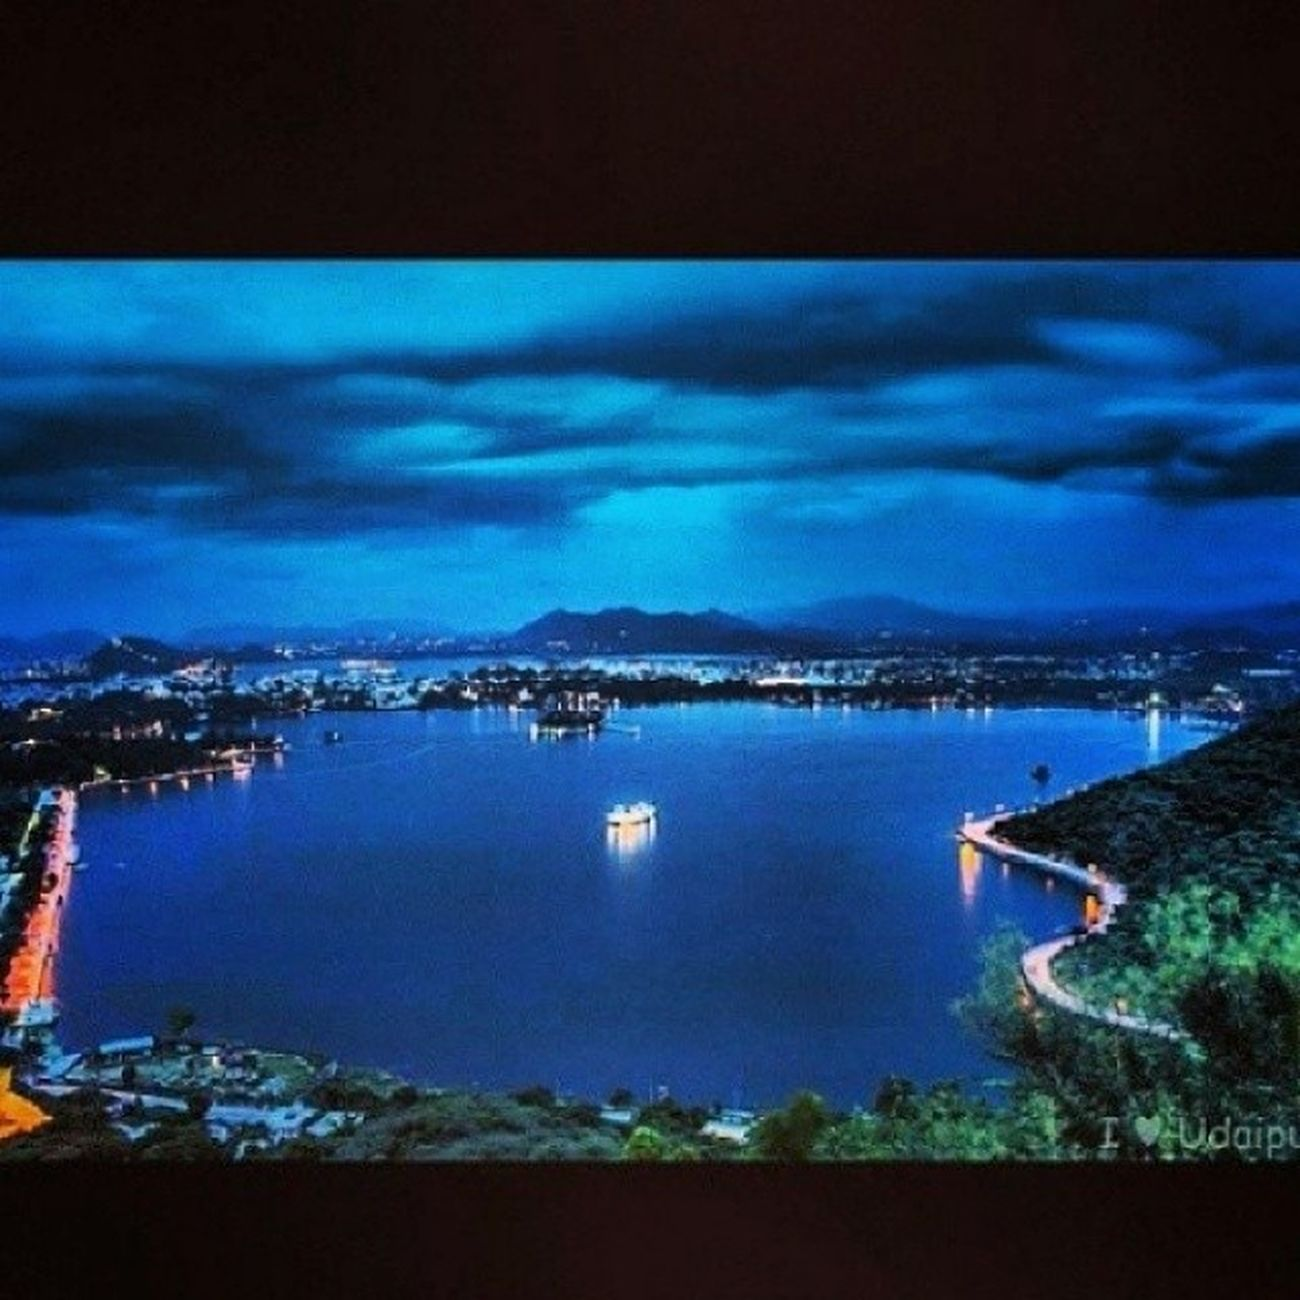 Love Udaipur Fatehsagar Lakefatehsagar blue instago instalike picoftheday beautiful bestcity webstagram tweegram themosstt instadaily photography awesome cityoflakes mouthshut best night <3 <3